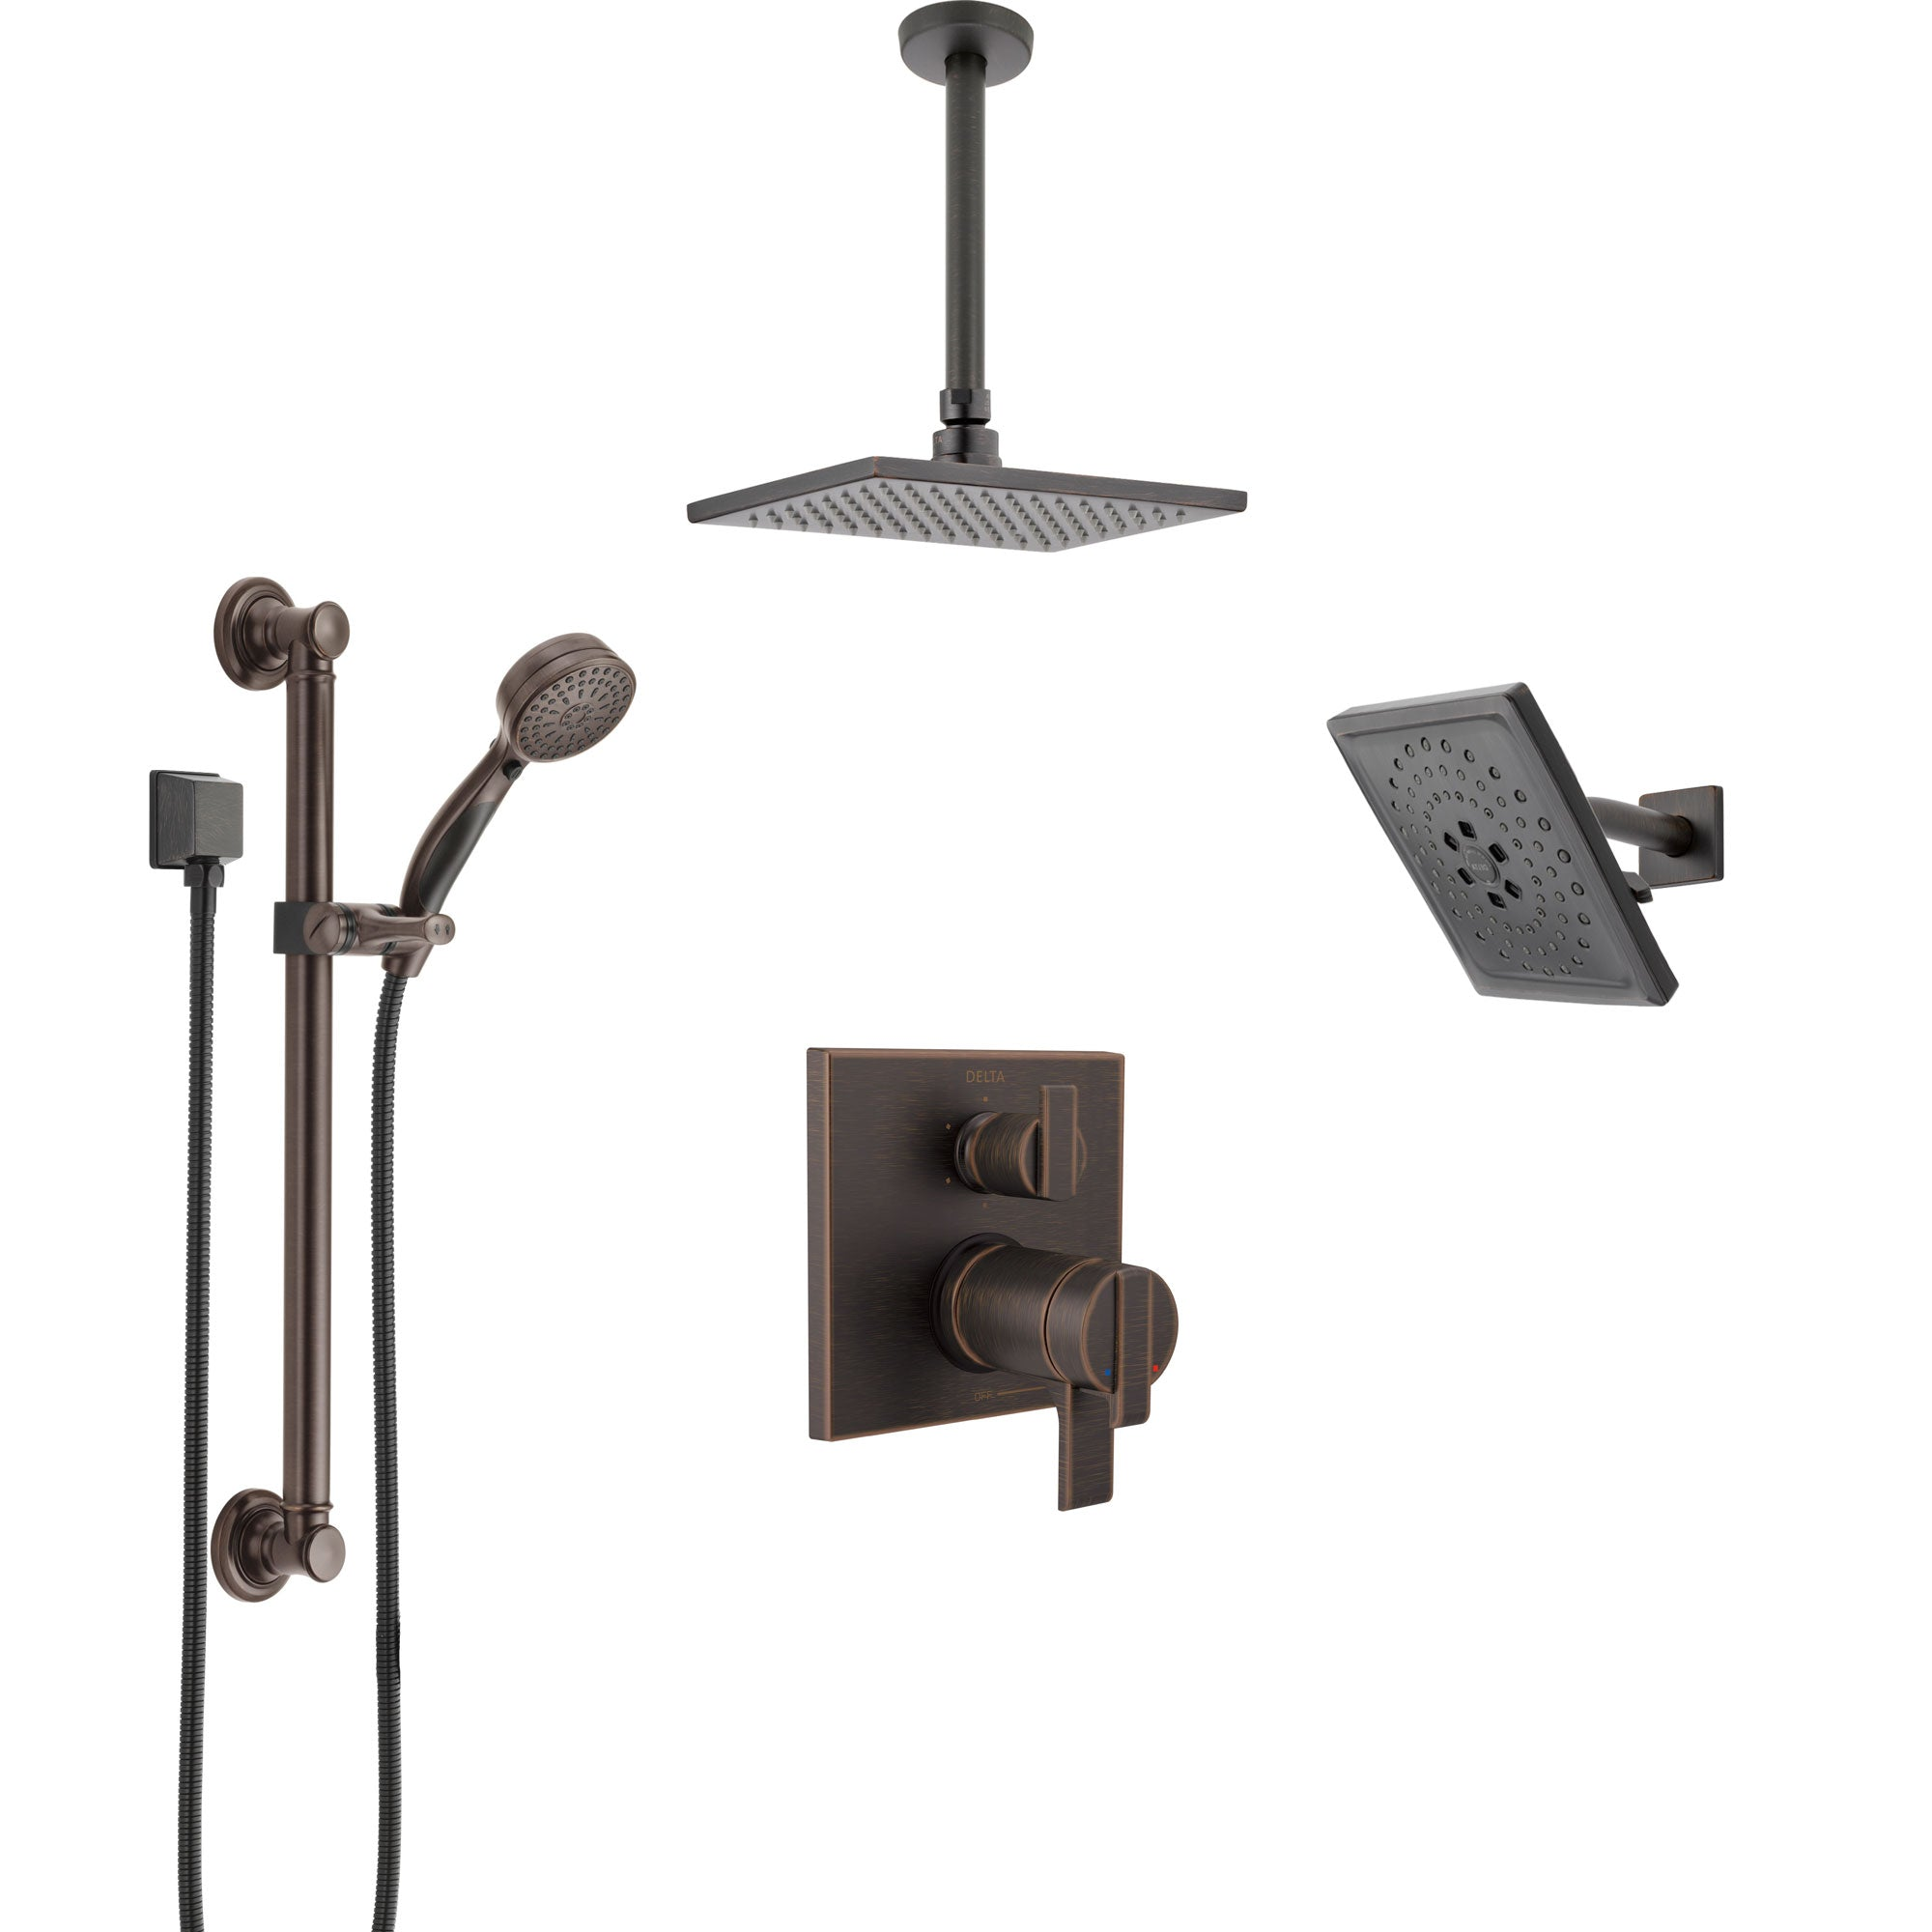 Delta Ara Venetian Bronze Dual Thermostatic Control Shower System, Showerhead, Ceiling Showerhead, Grab Bar Hand Spray SS27T967RB11